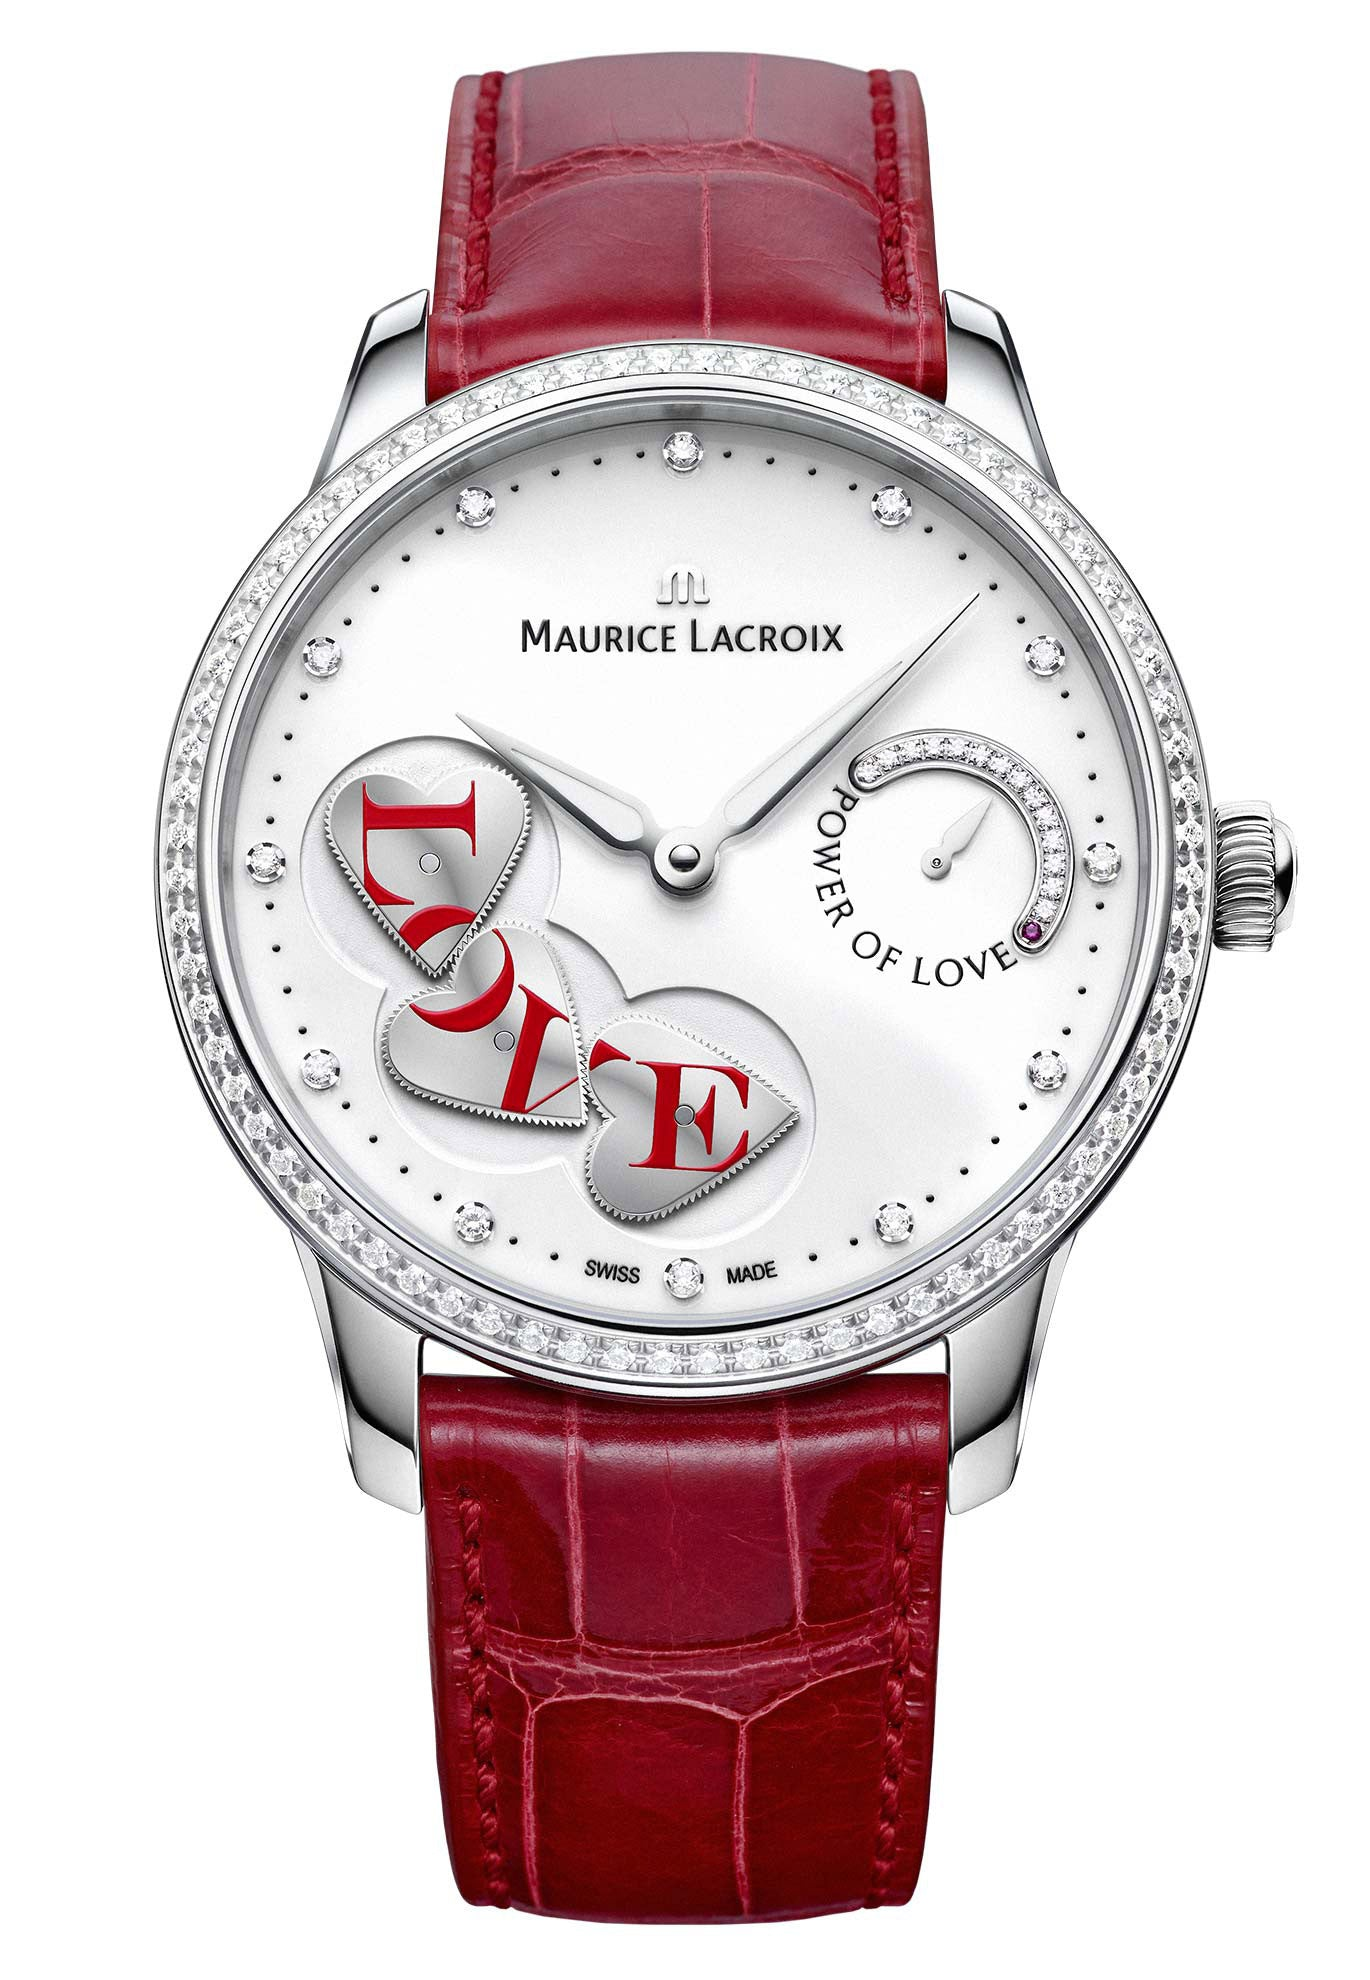 Maurice Lacroix Watch Masterpiece Power of Love